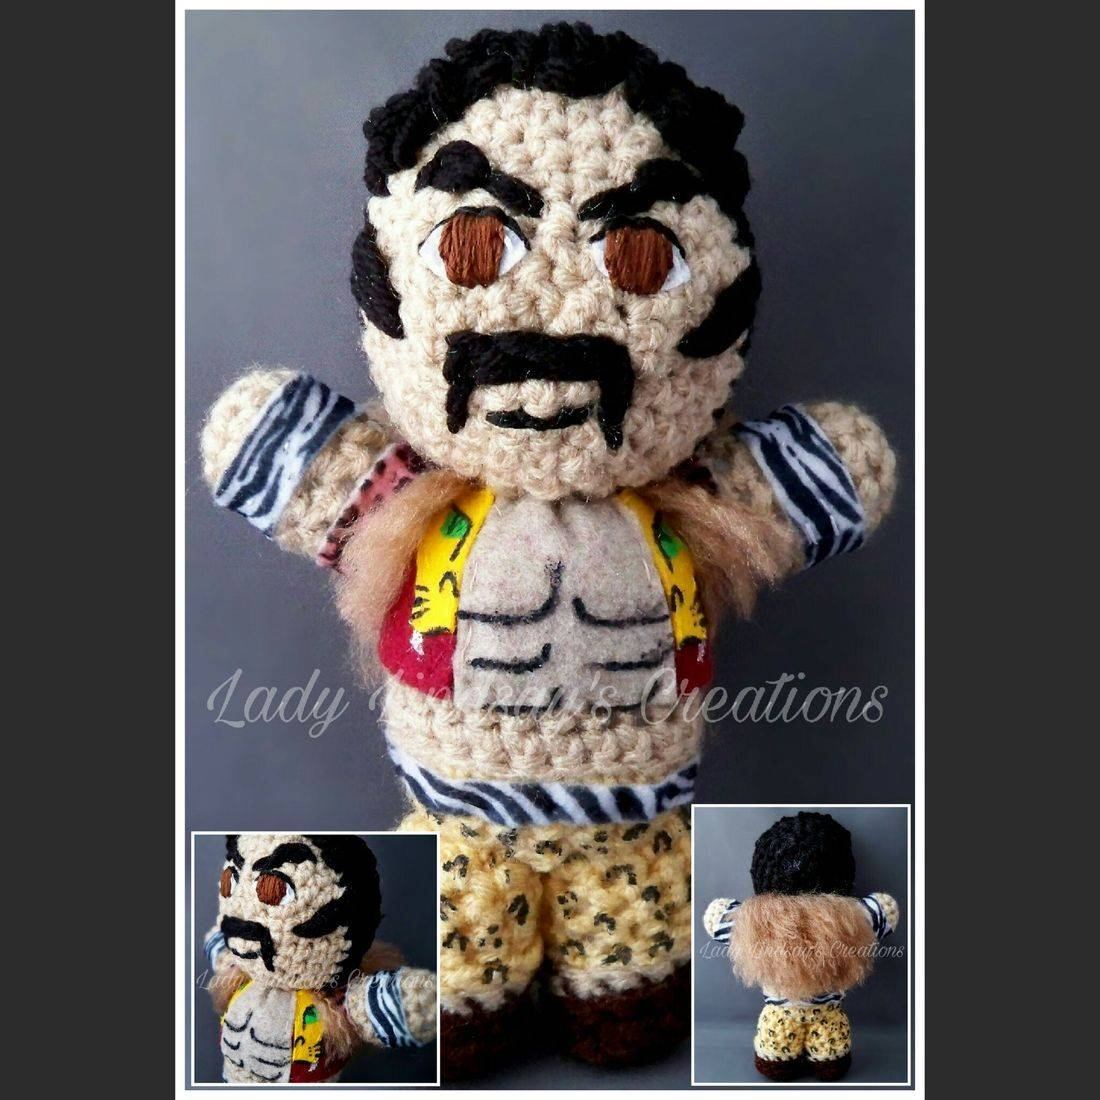 Kraven, Spiderman, Sinister Six, homecoming, Marvel, amigurumi, doll, plush, nerd, geek, collectible, crochet, handmade, Peter Parker